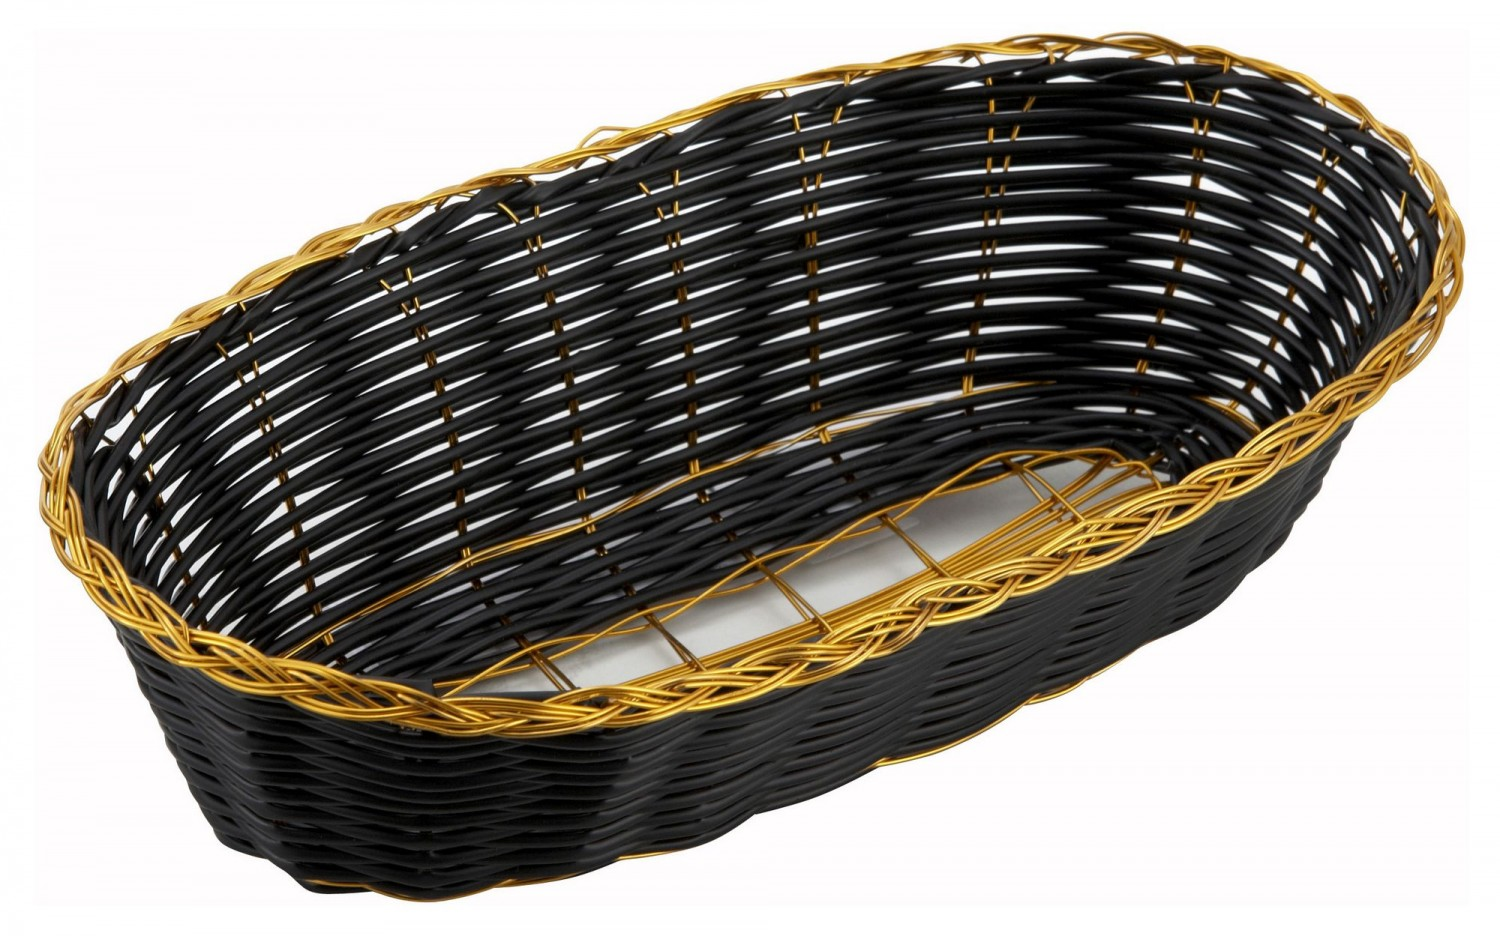 Winco PWBK-9B Oblong Woven Basket, Black with Gold Trim - 1 doz